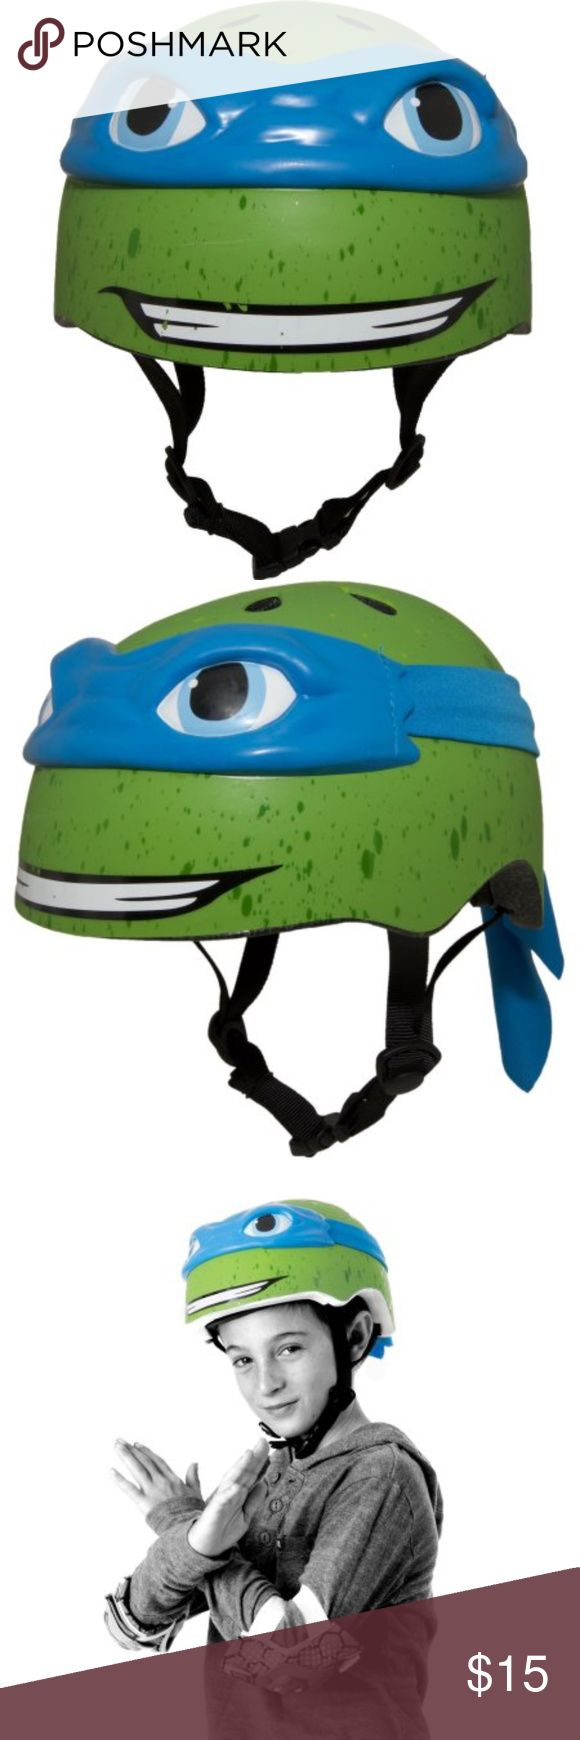 Nickelodeon Teenage Mutant Ninja Turtles Leonardo Gender Male Brand Teenage Mutant Ninja Turtles Sport Bicycling Age Range5 to 8 Years Age Group Child Assembled Product Weight 2.27 lb Assembled Product Dimensions (L x W x H) 8.27 x 6.50 x 6.50 Inches-Leonardo 3D Bike Helmet, Nickelodeon Other